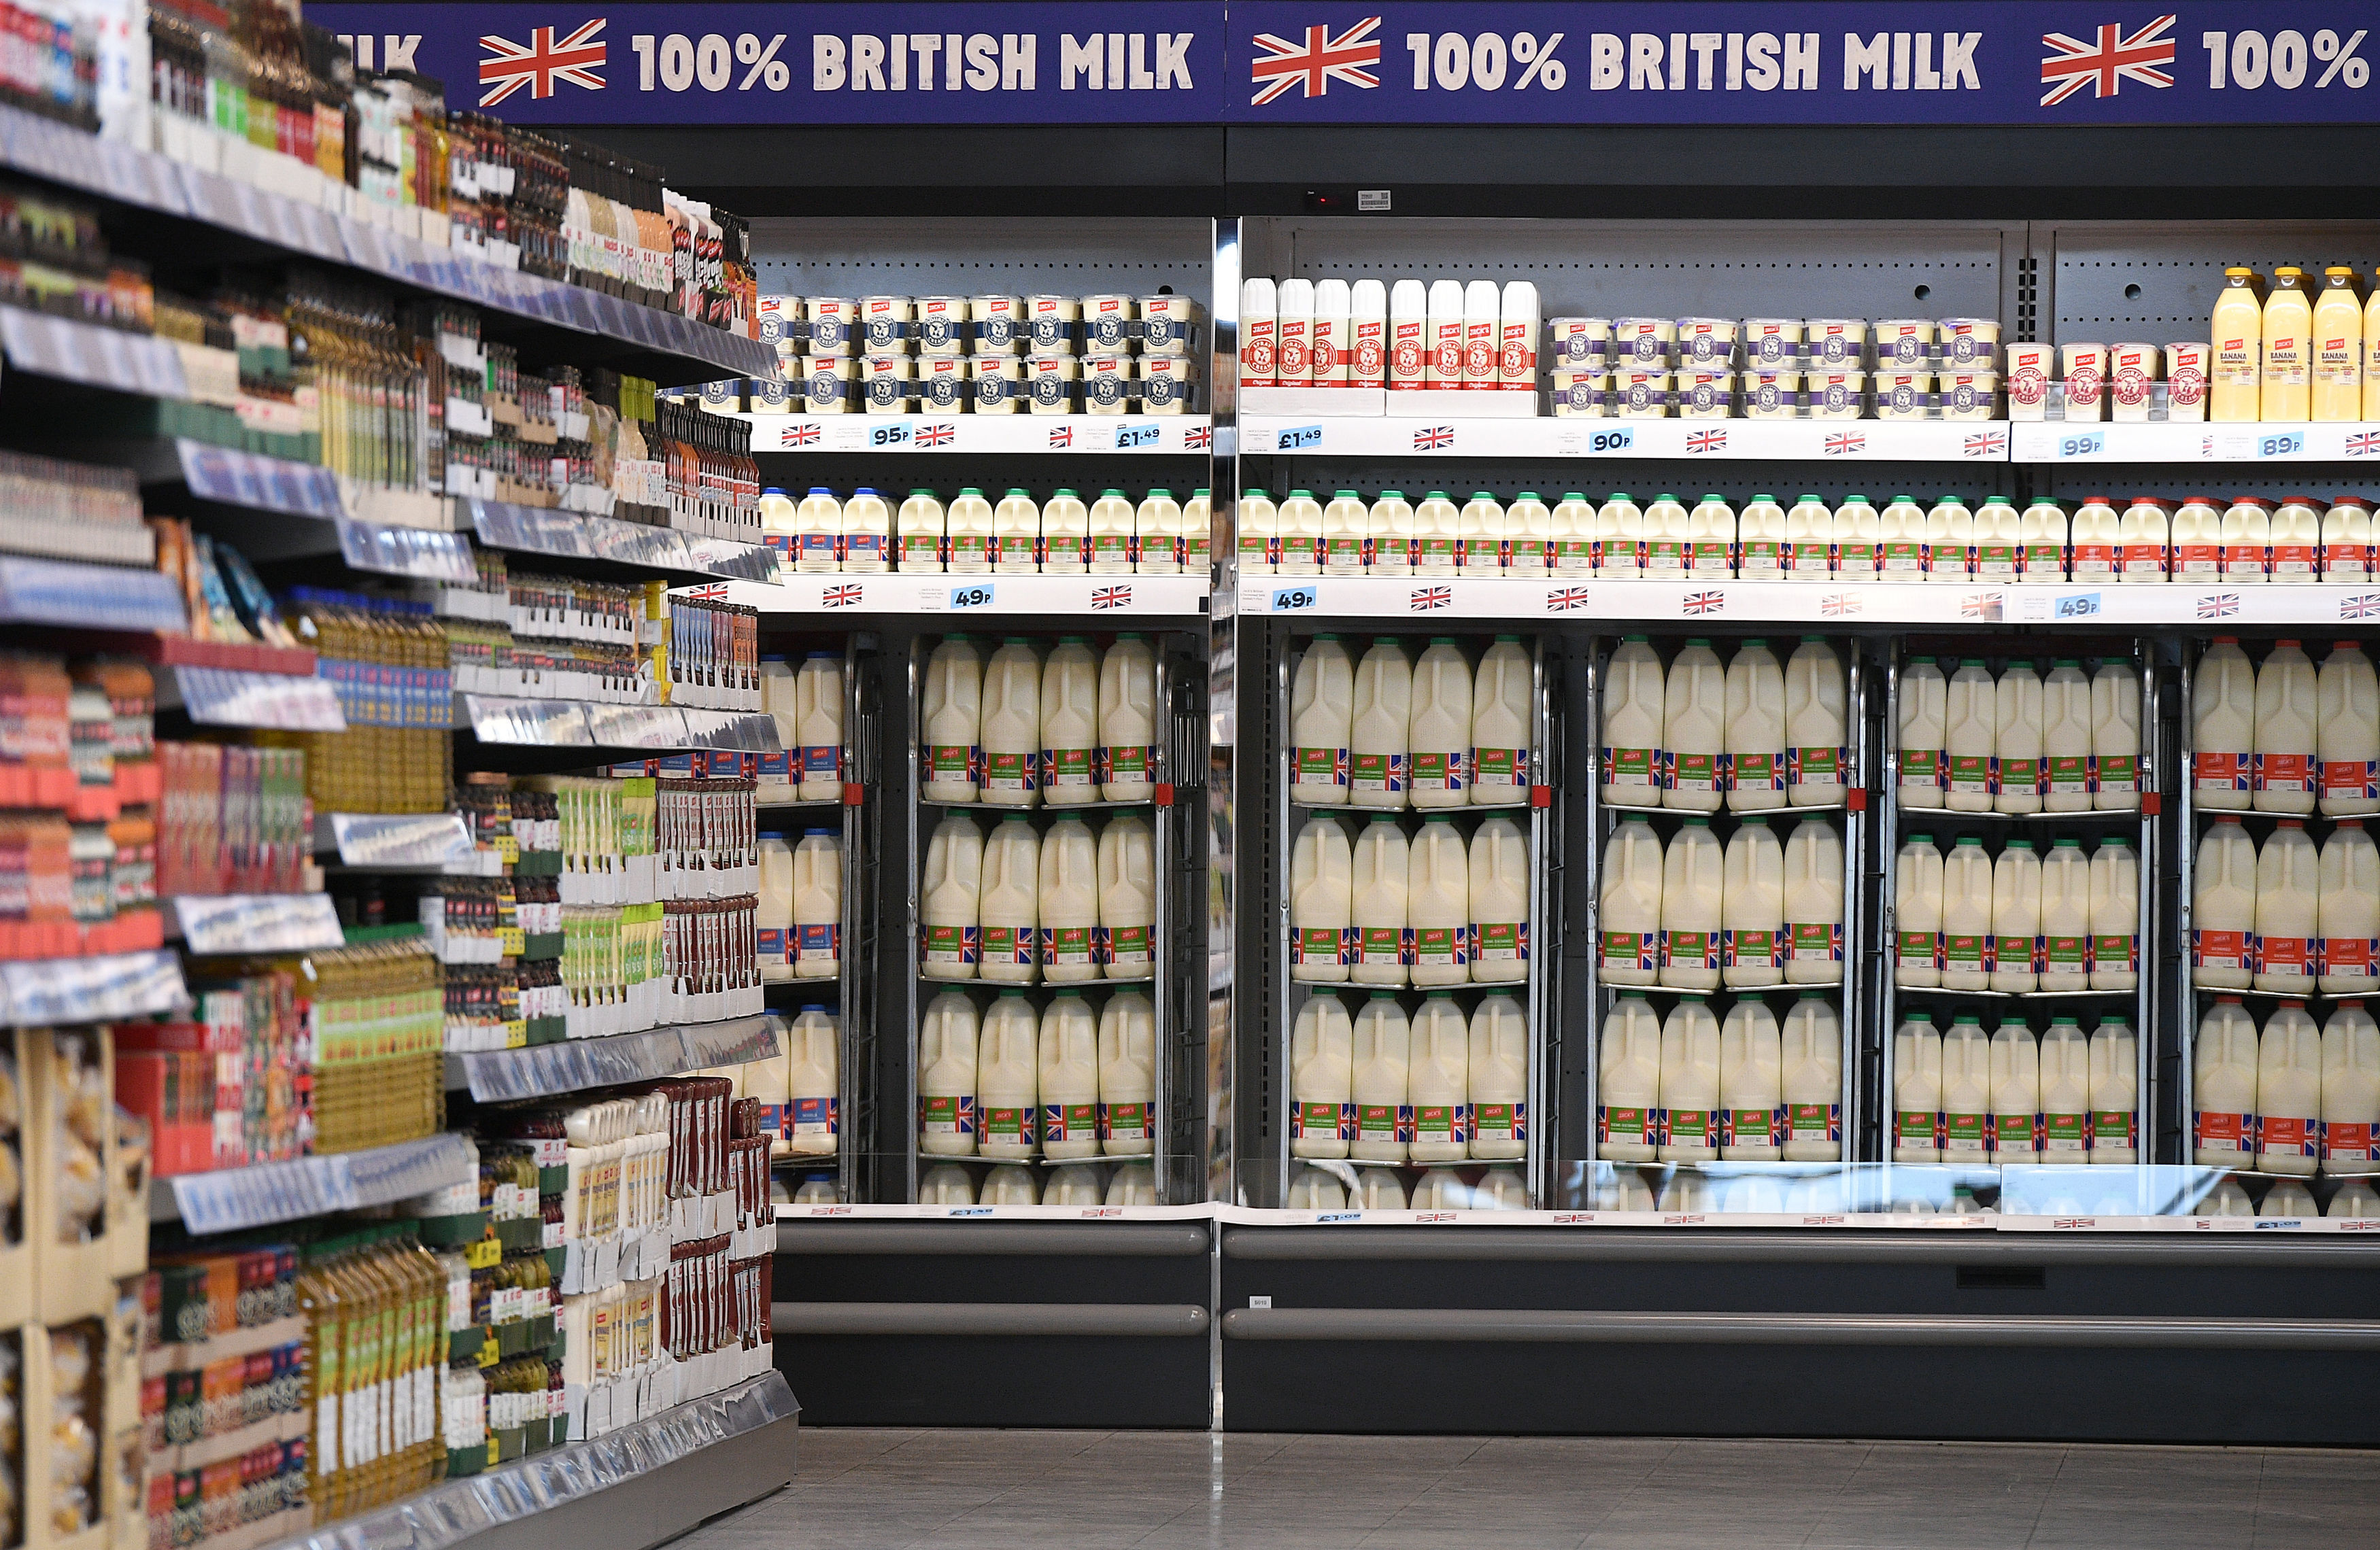 What do shoppers think of the new Jack's brand launched by Tesco?